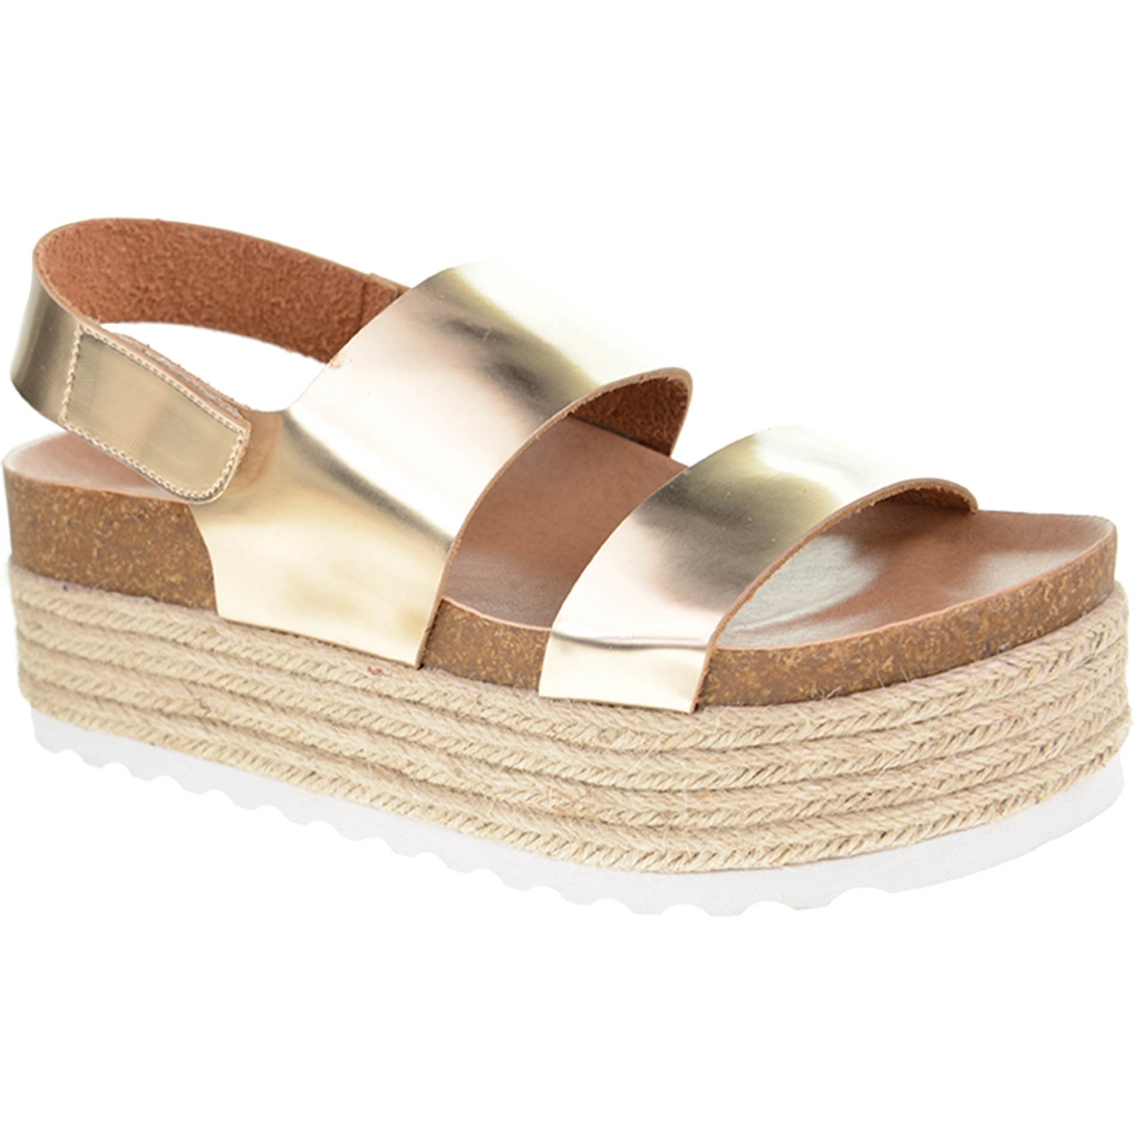 2f629b409b52 Dirty Laundry Peyton Footbed Wedge Sandals